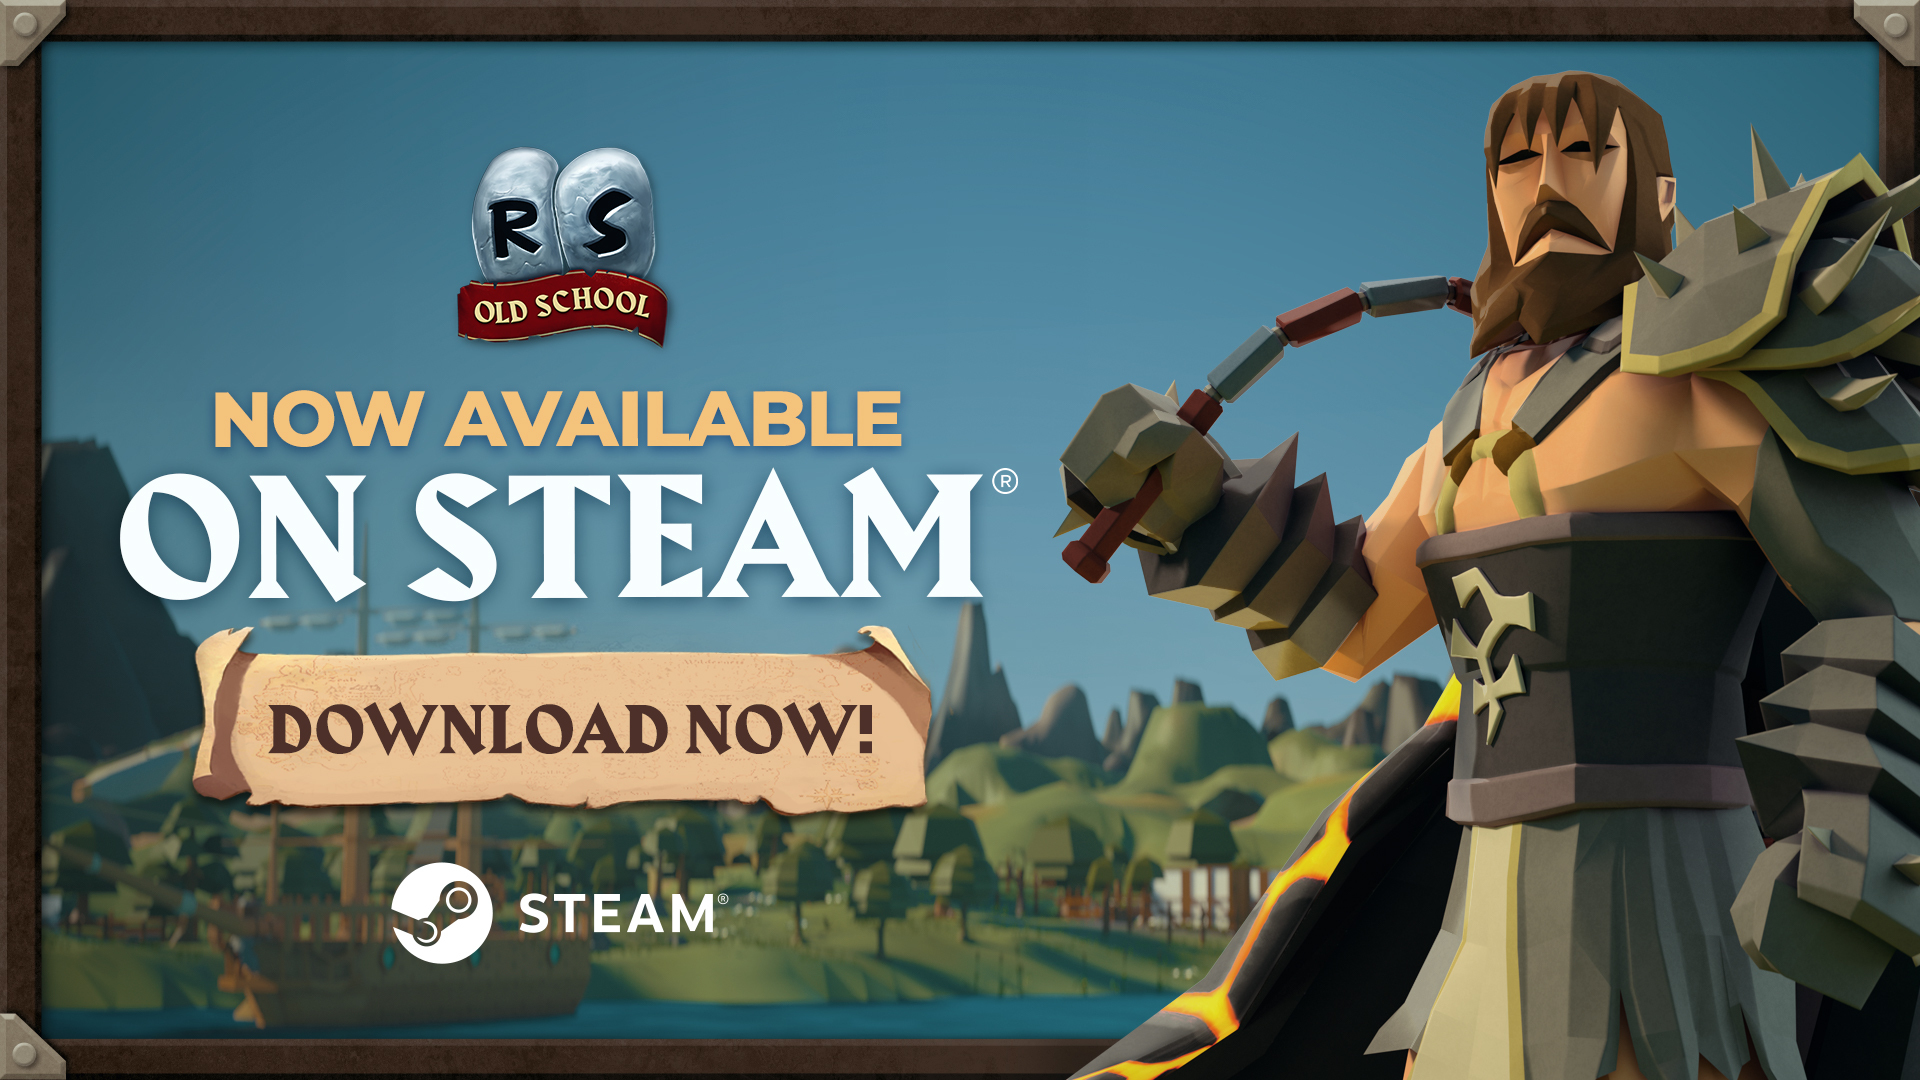 OLD SCHOOL RUNESCAPE NOW AVAILABLE ON STEAM